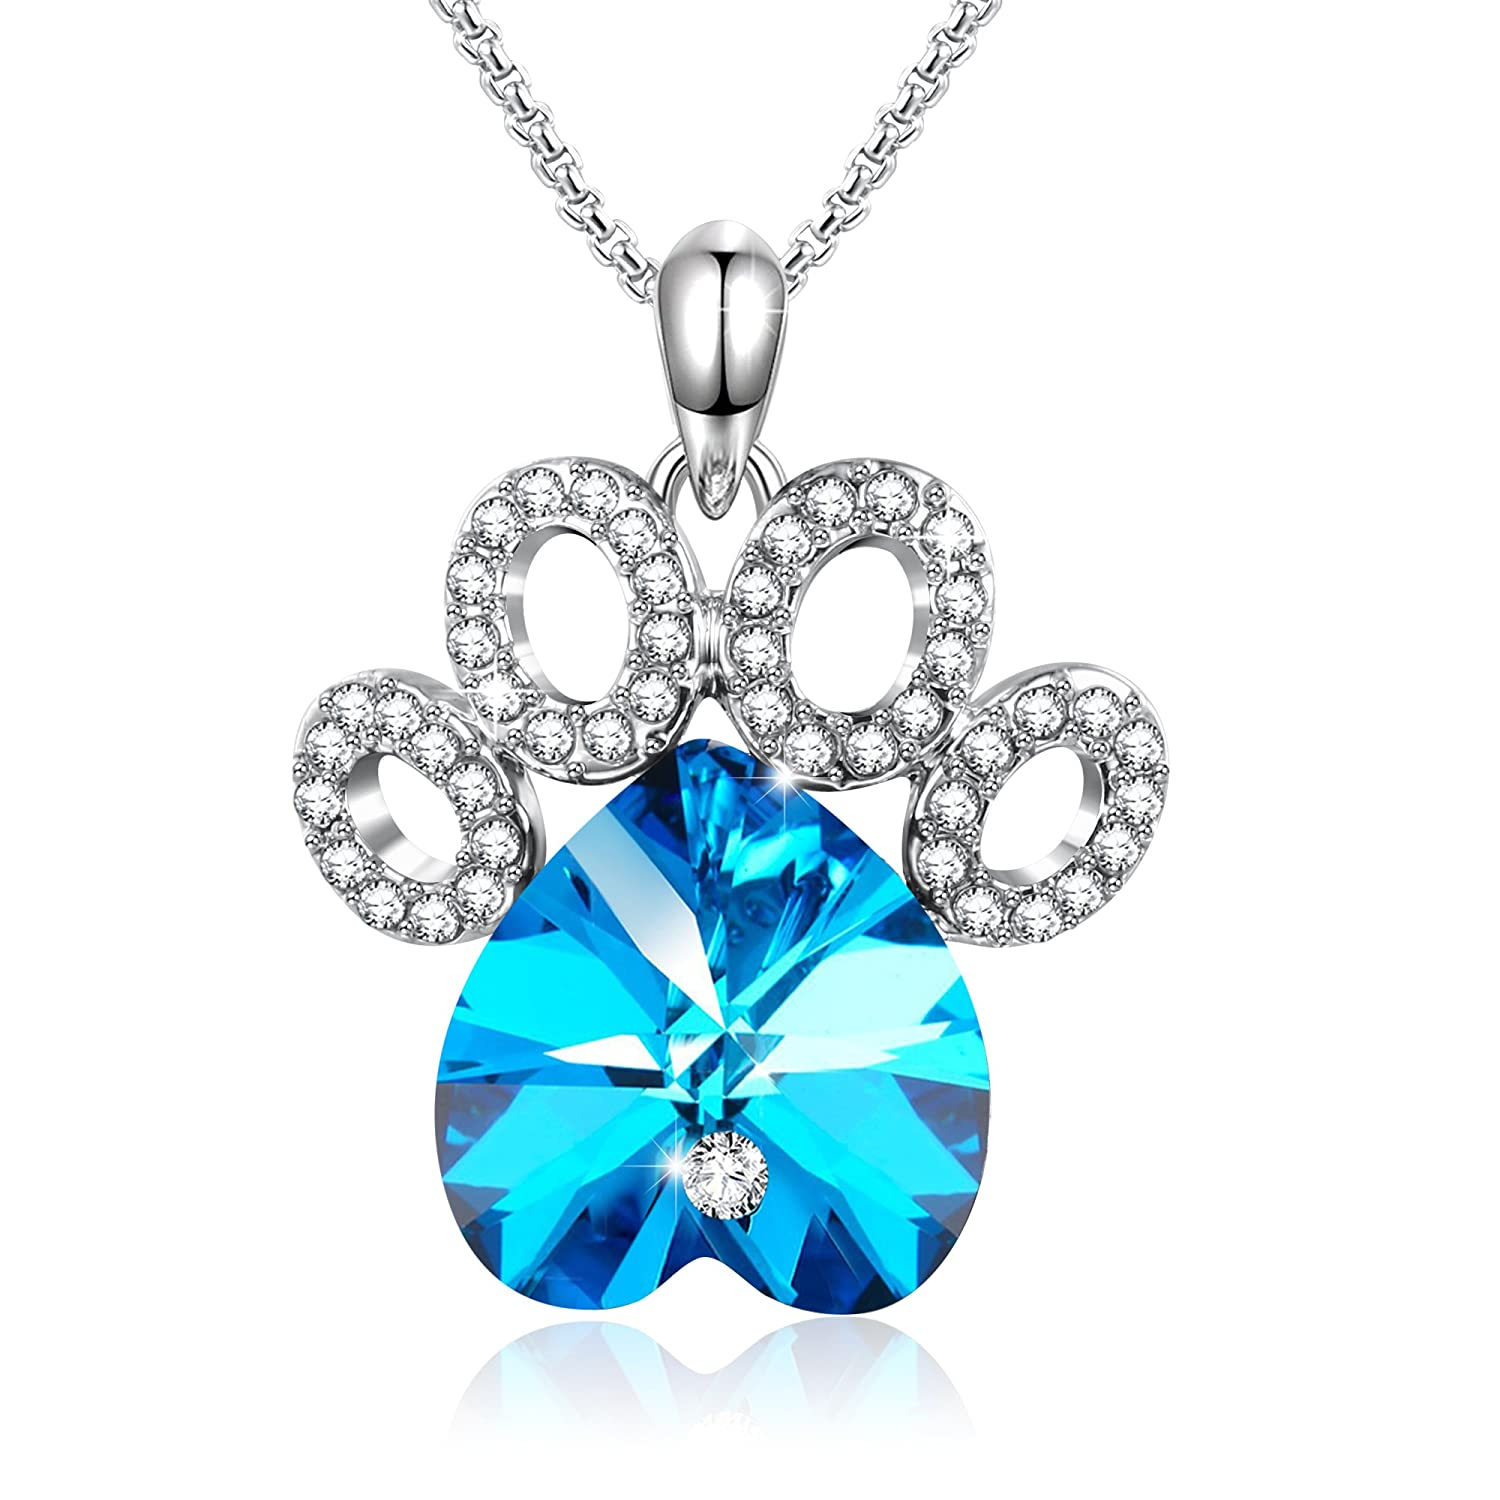 """""""Puppy Love""""Dog Paw Pendant Necklace Love Heart Shaped Birthday Gifts for Women Wife,Blue Crystals from Swarovski"""